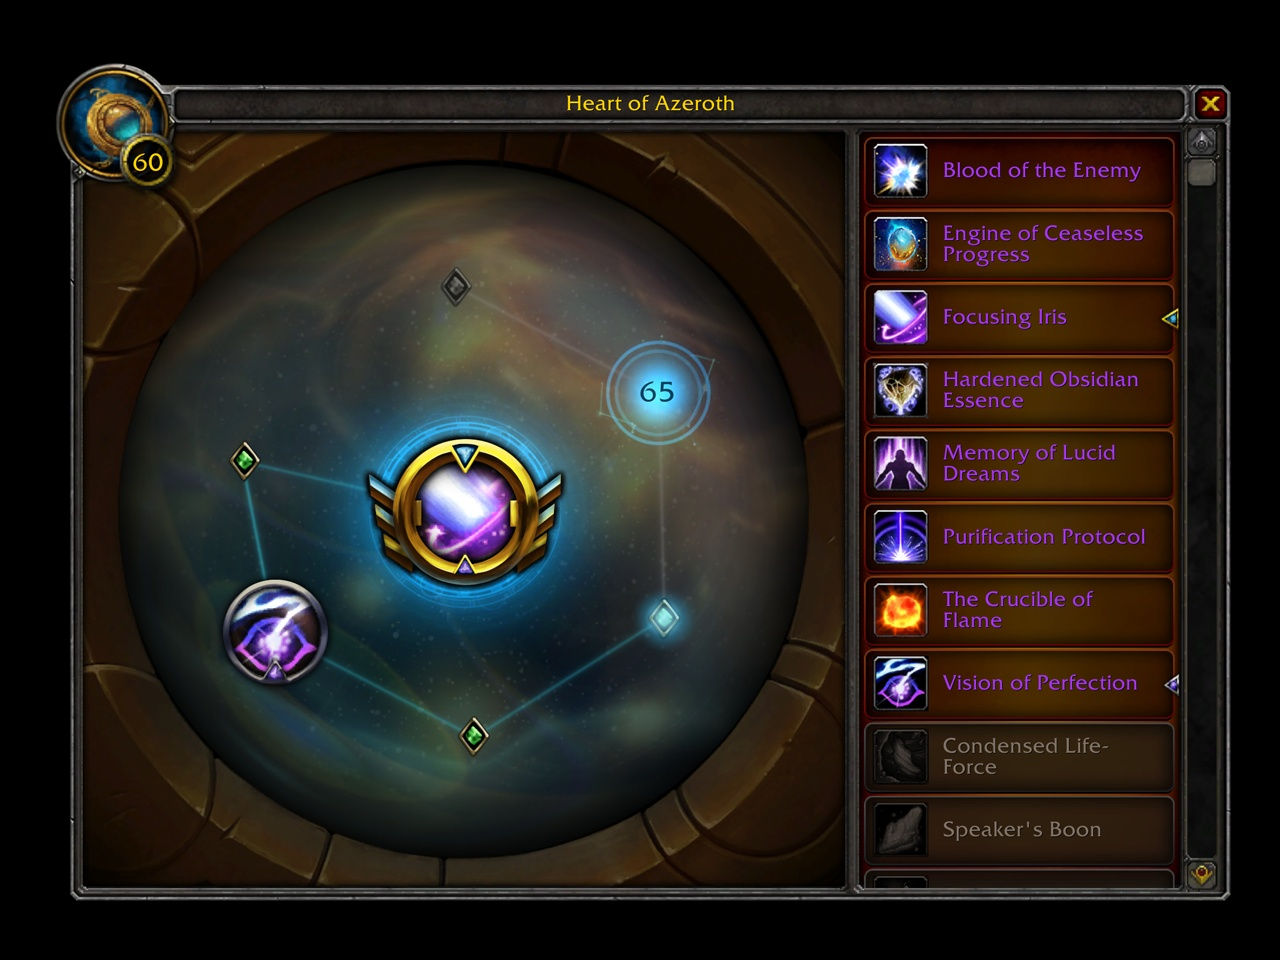 Heart of Azeroth Essence Overview - Descriptions, Rank Upgrades and